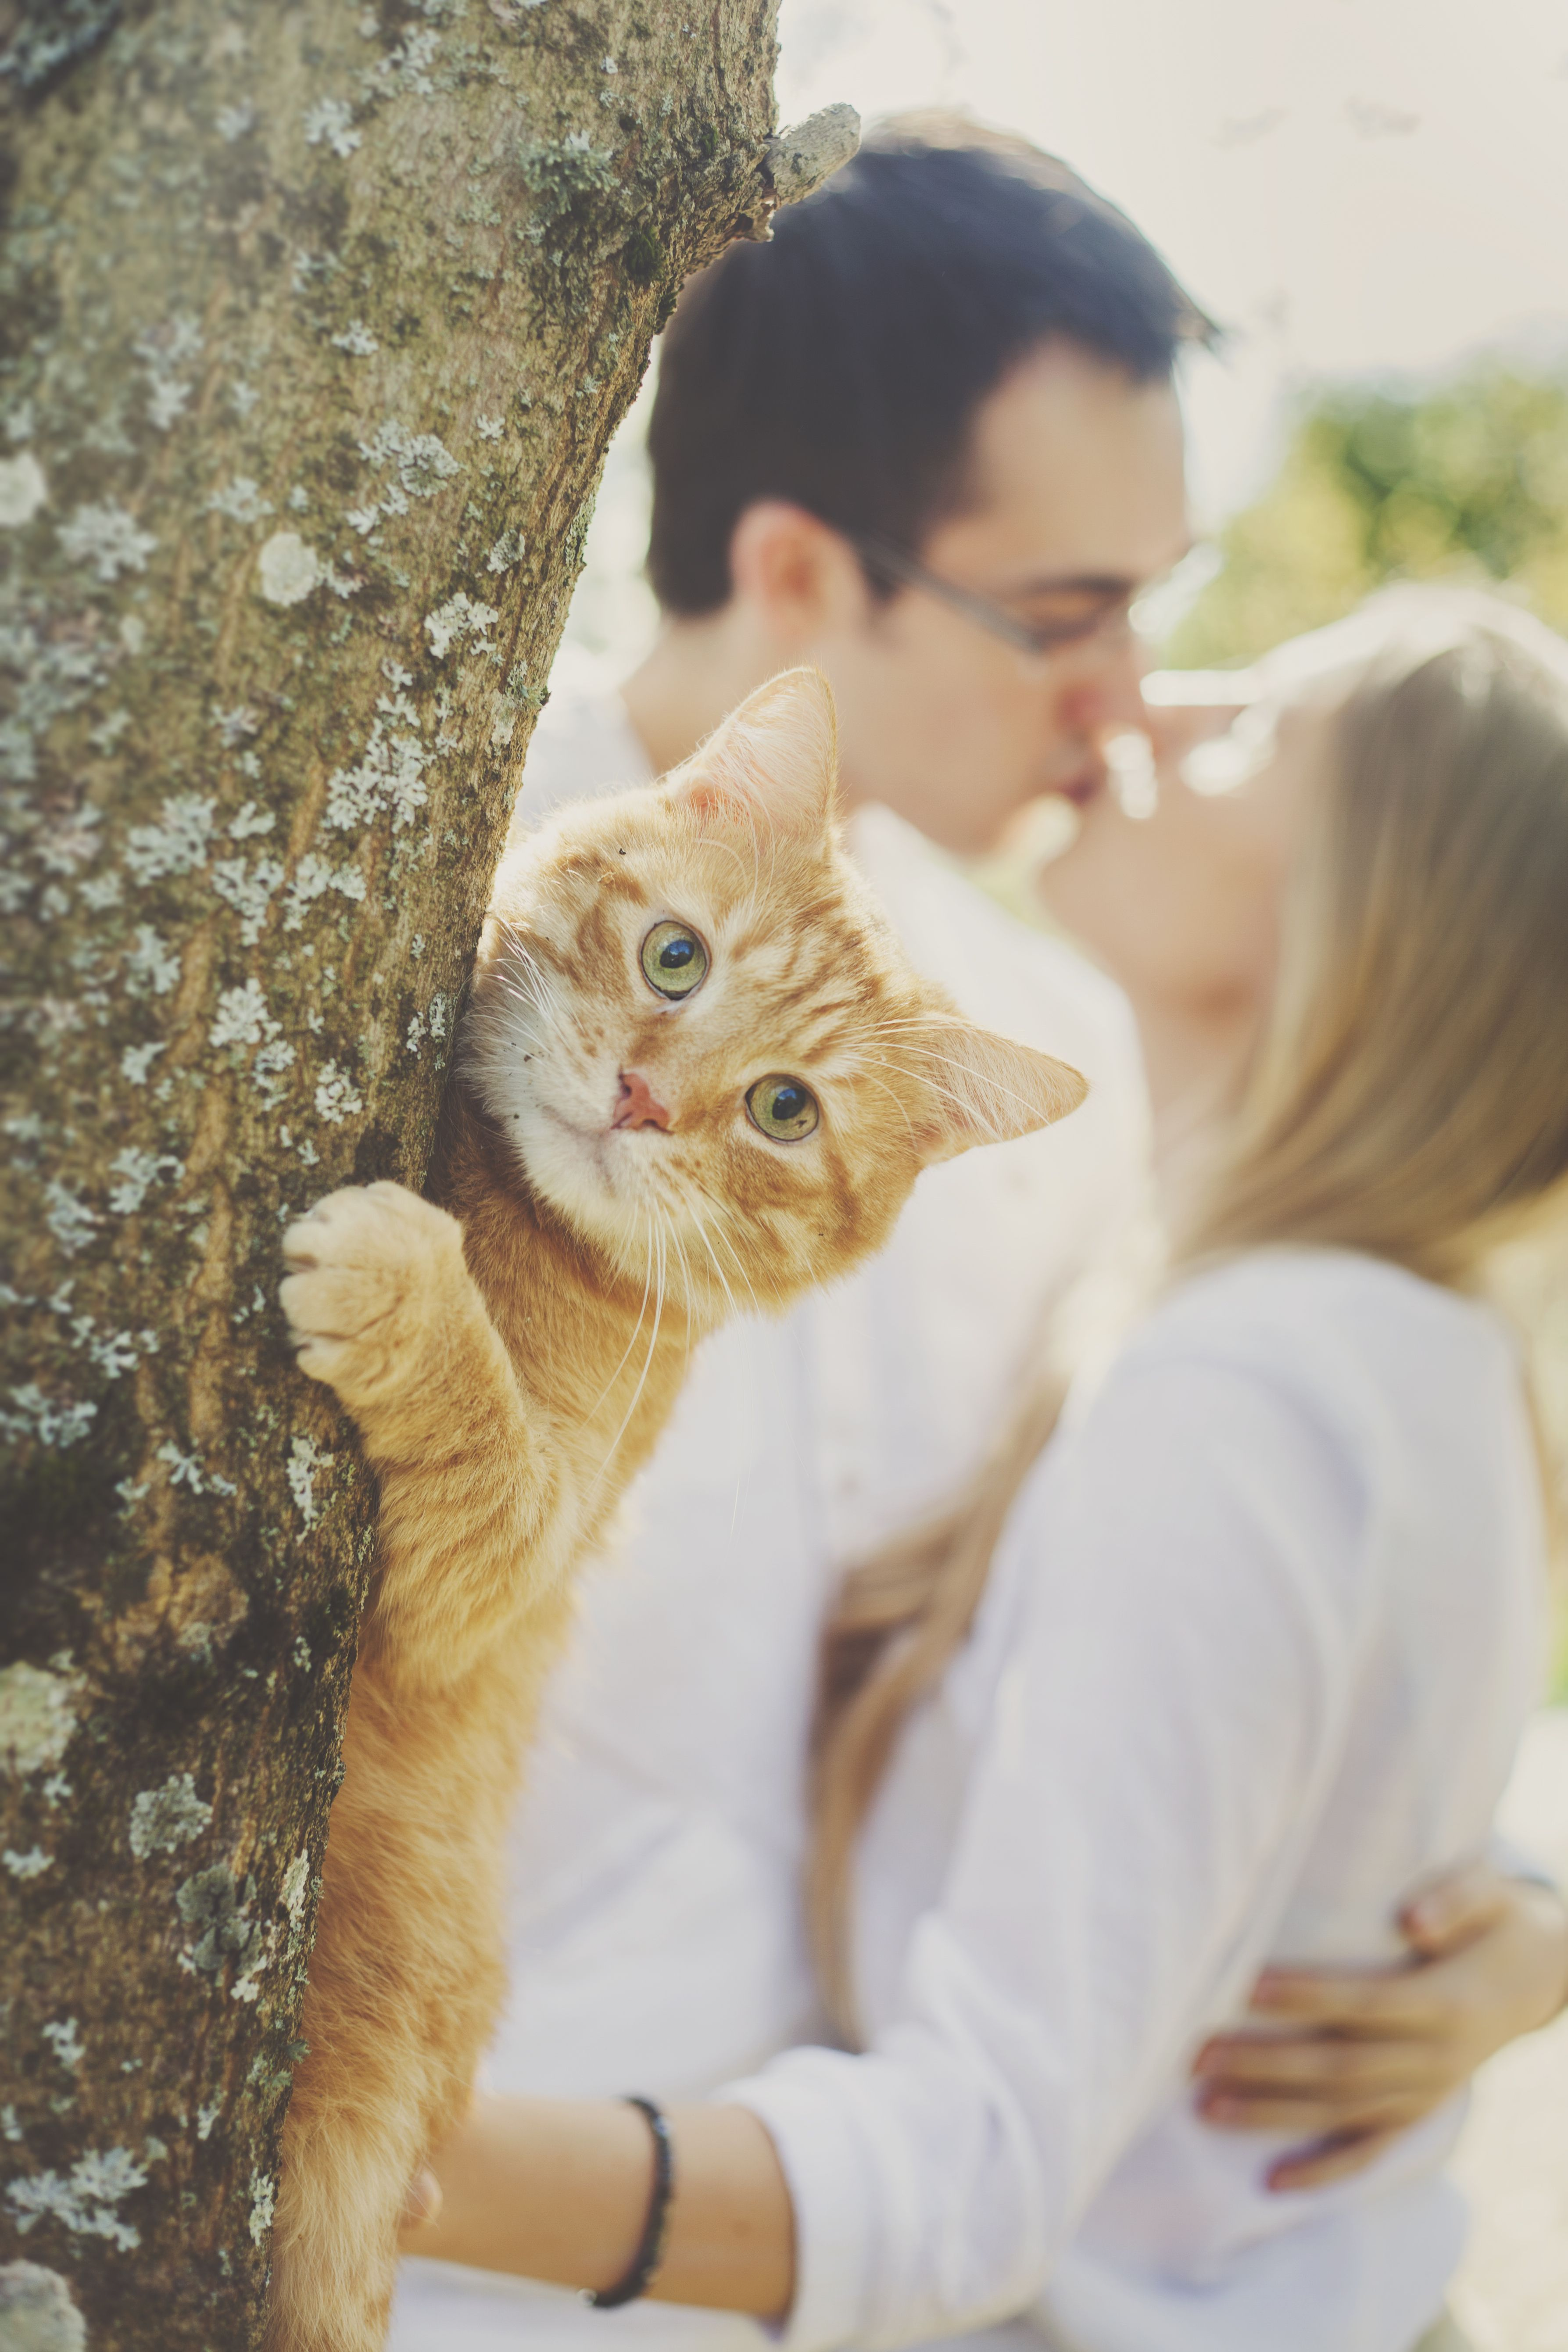 Engagement Photo With My Beloved Cat: Cat Maid Wedding Ring At Websimilar.org